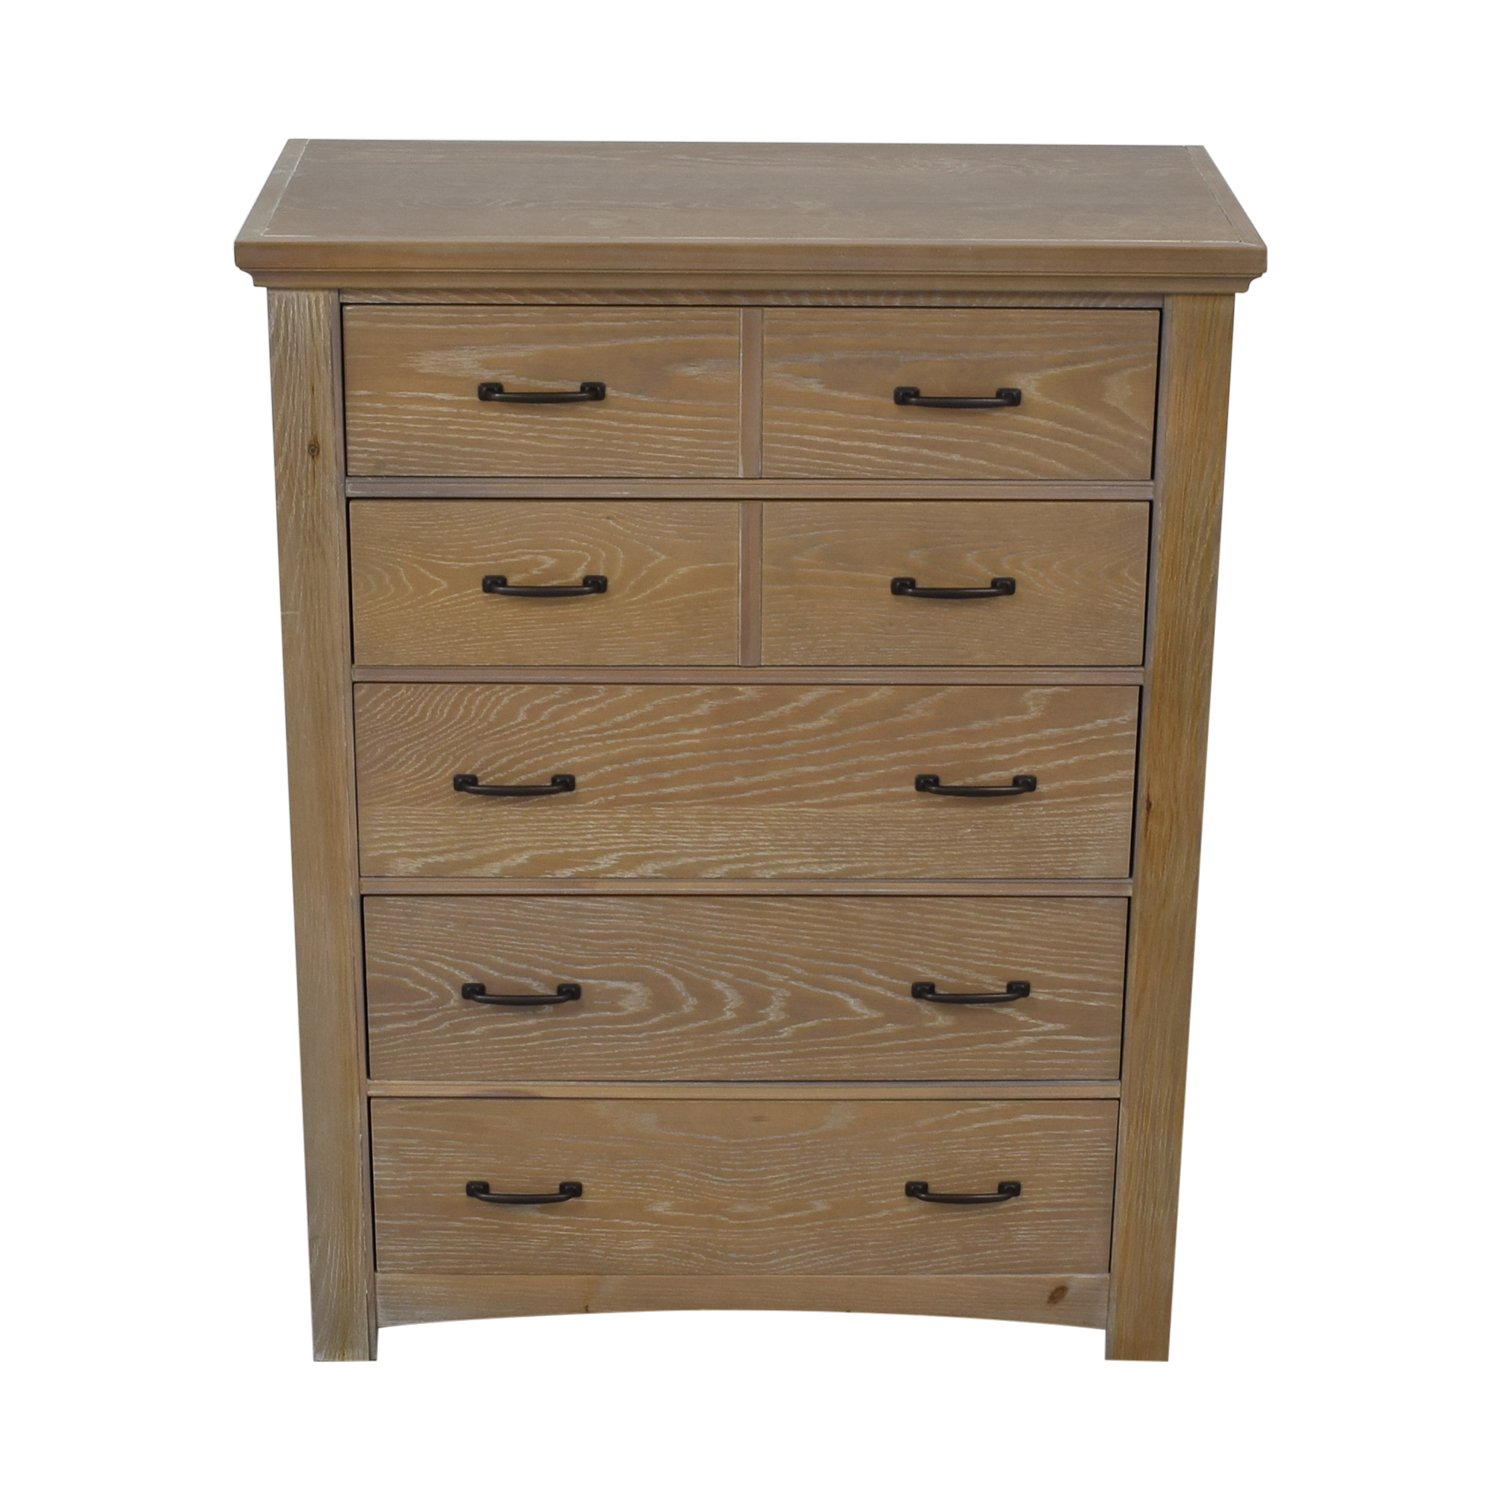 Vaughan-Bassett Vaughan-Bassett Five-Drawer Tallboy Dresser coupon